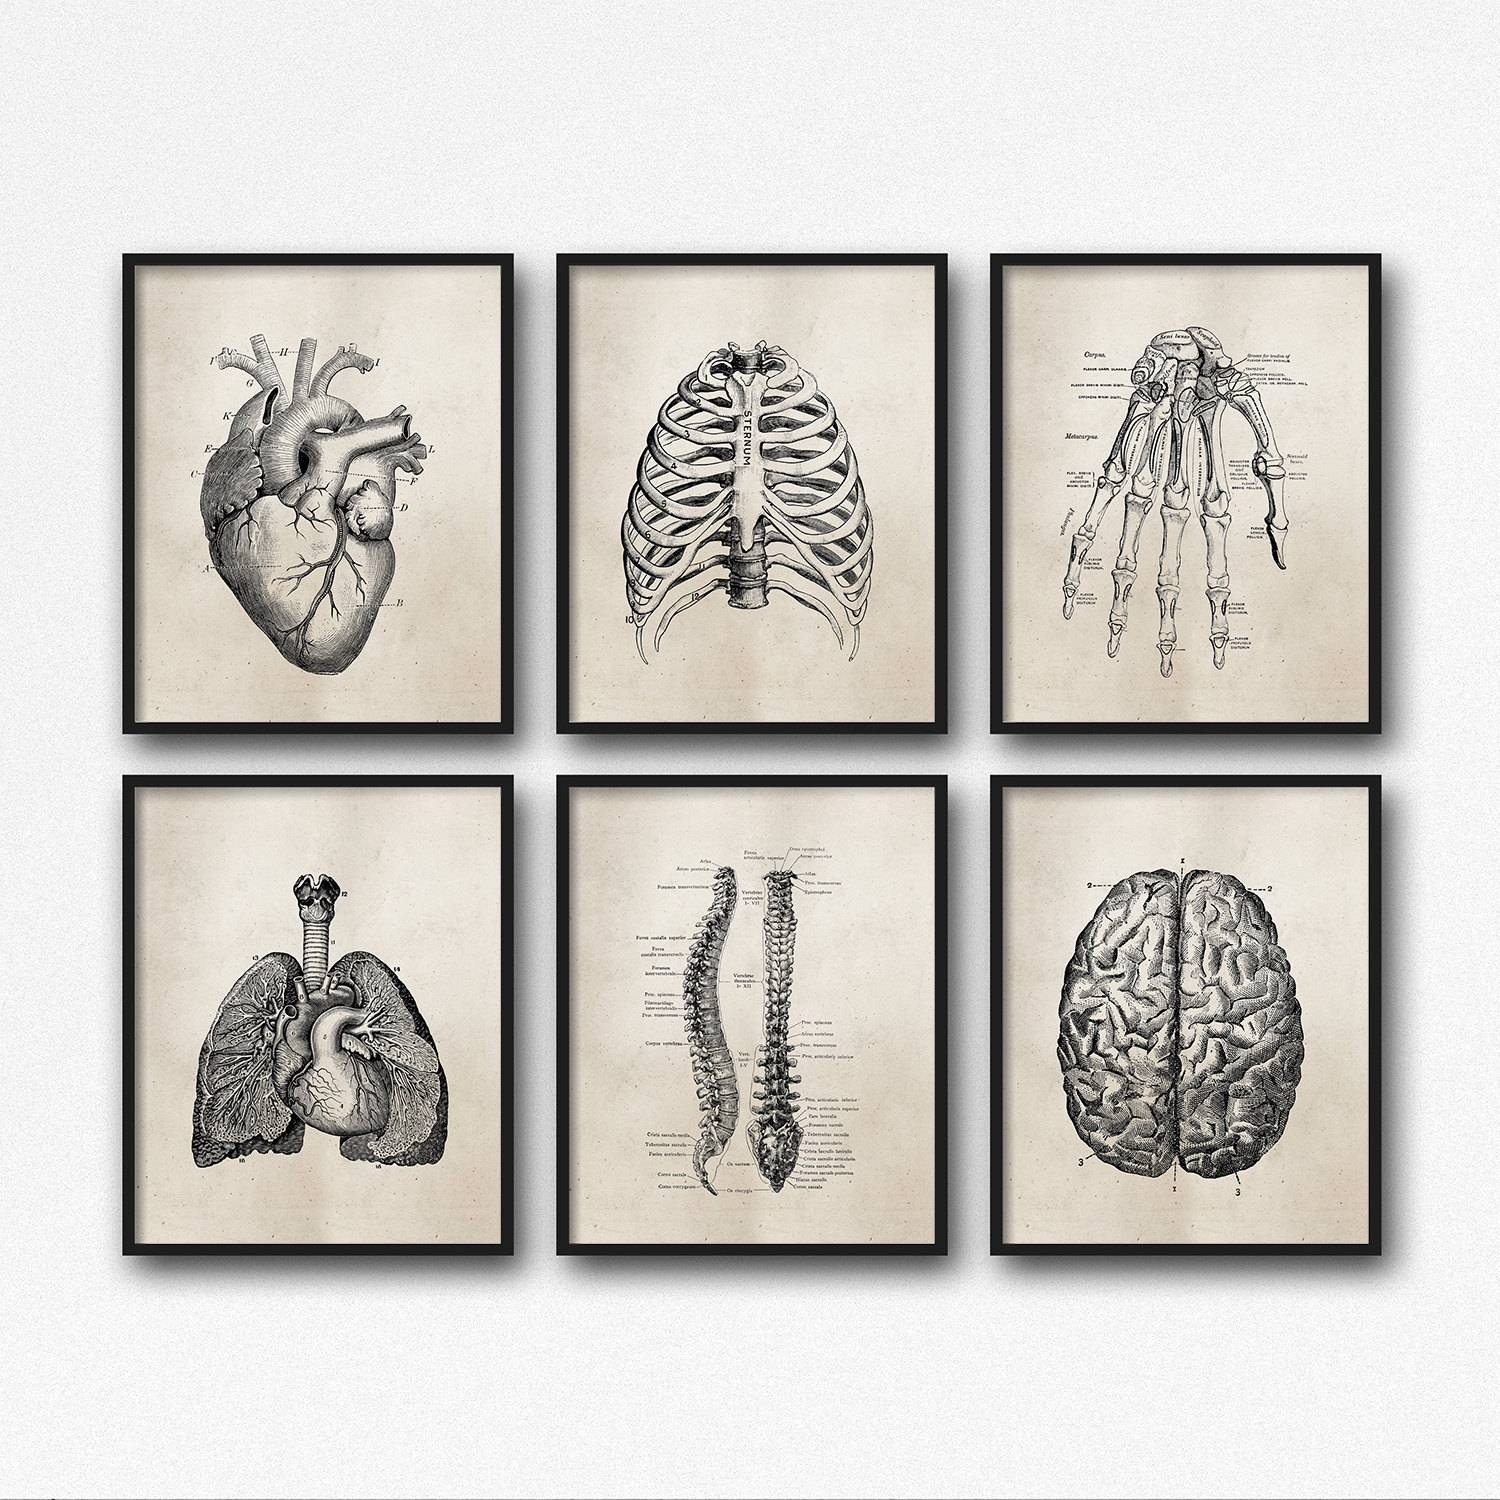 Anatomy Art Prints Office Art Medical Student Graduation For Recent Medical Wall Art (View 6 of 20)